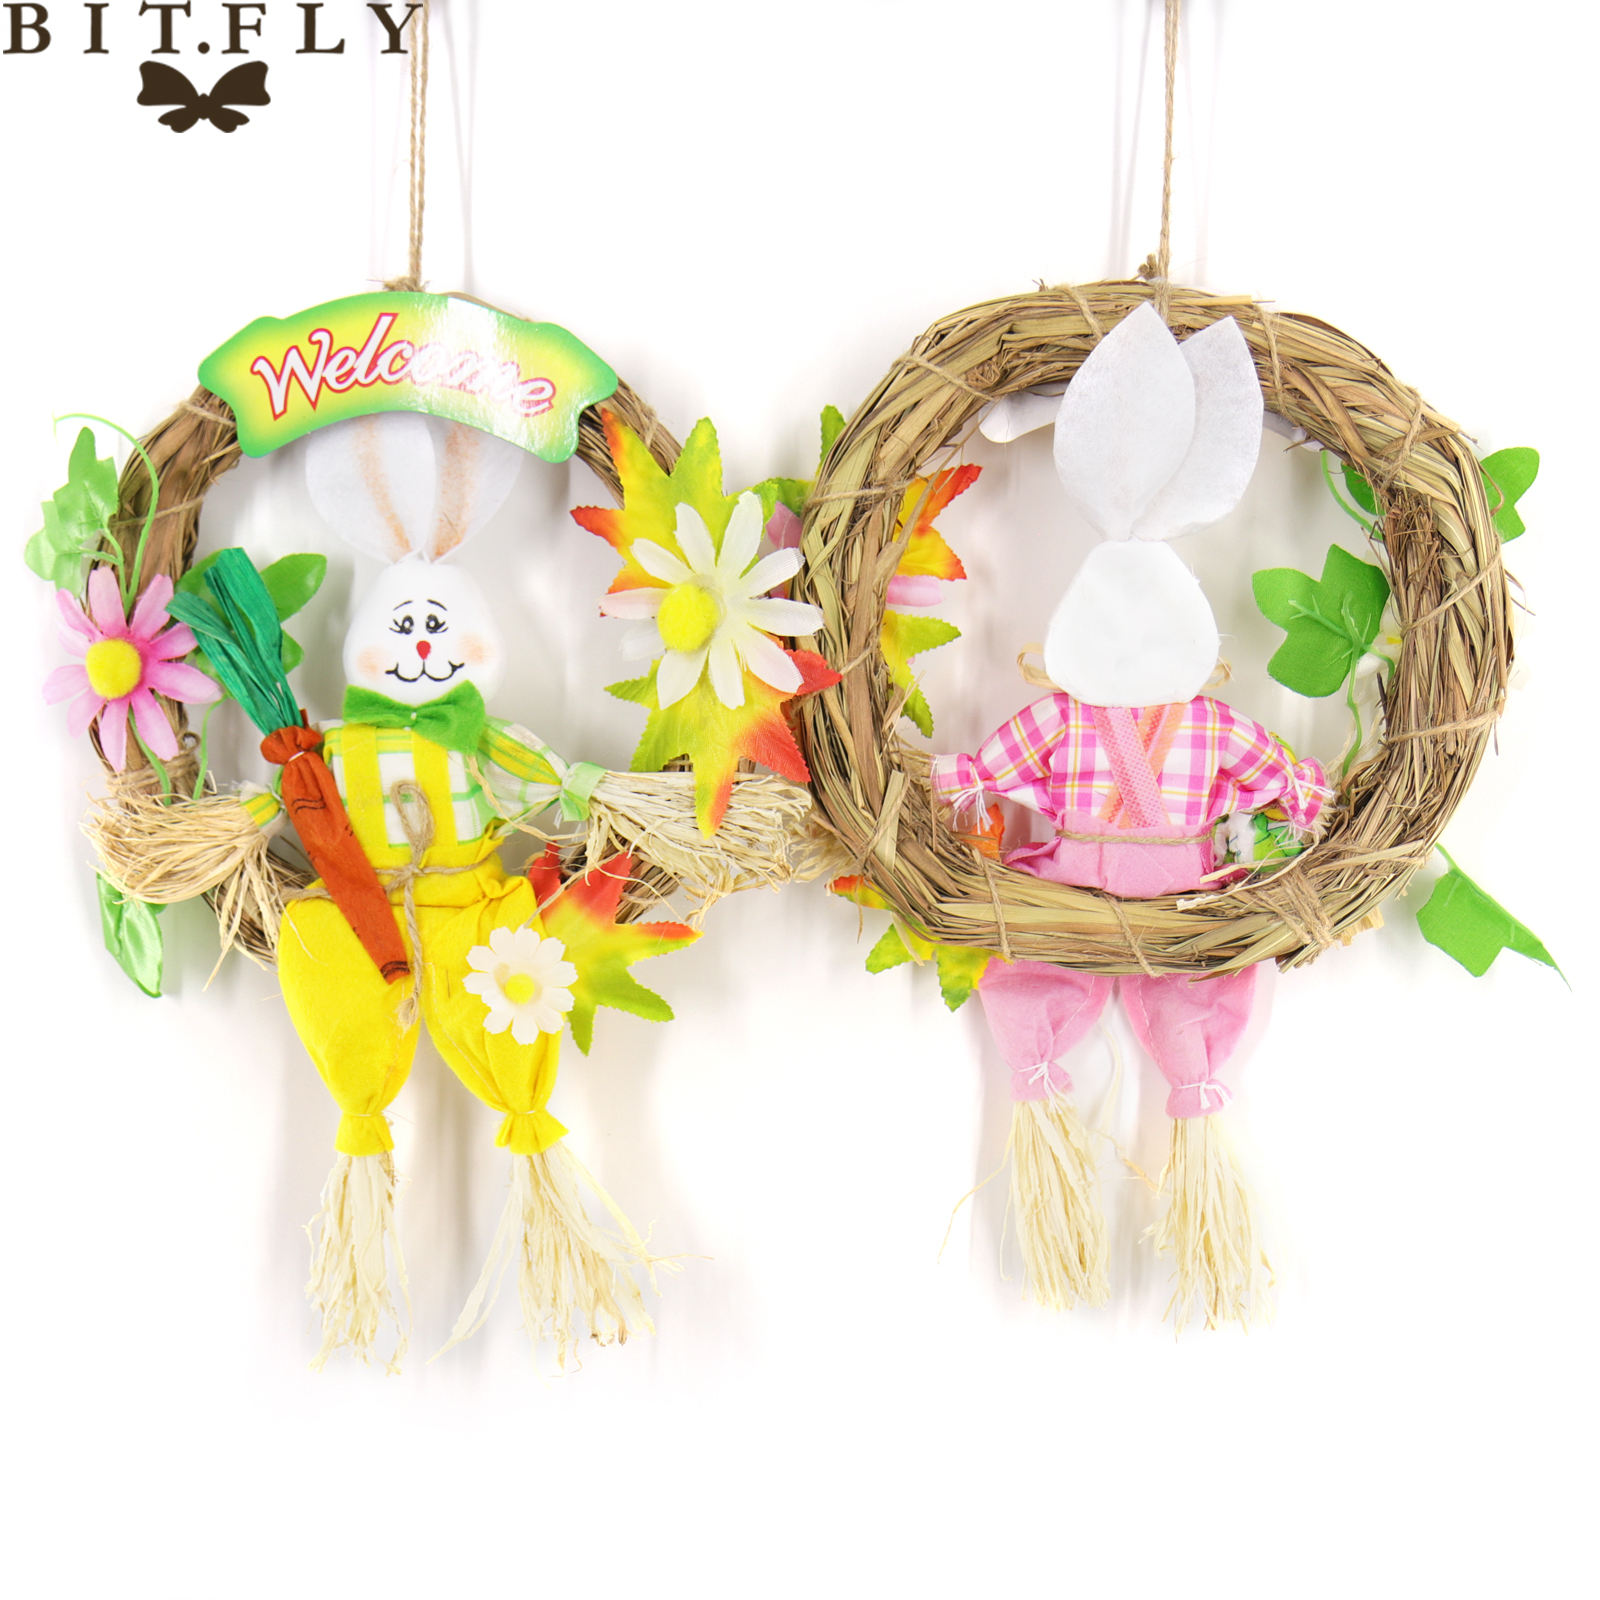 Us 3 44 18 Off Bitfly 1pc Straw Cute Easter Rabbit Easter Rabbit With Carrot Wreath Garland Party Door Decoration Easter Decoration For Home In